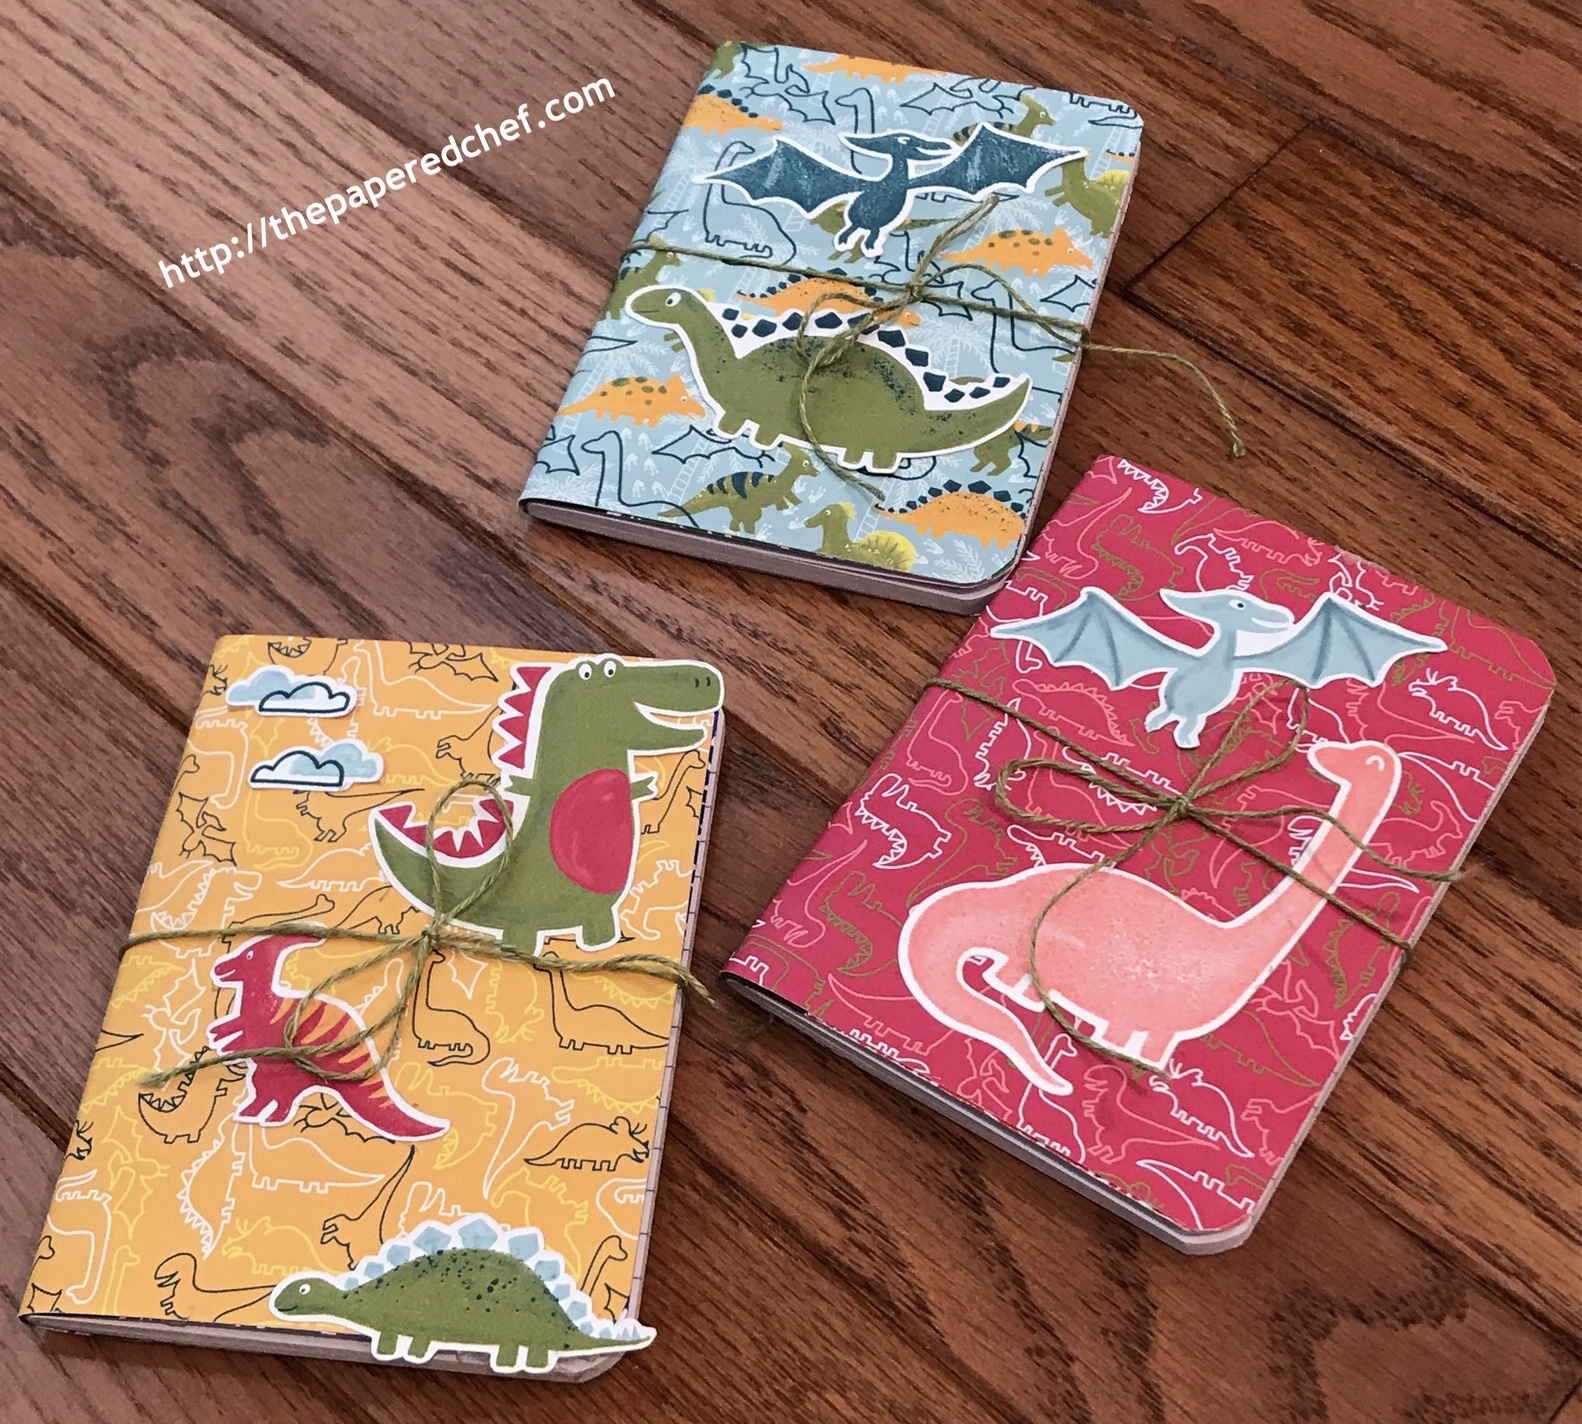 Dinoroar Suite by Stampin' Up! - Mini Notebooks